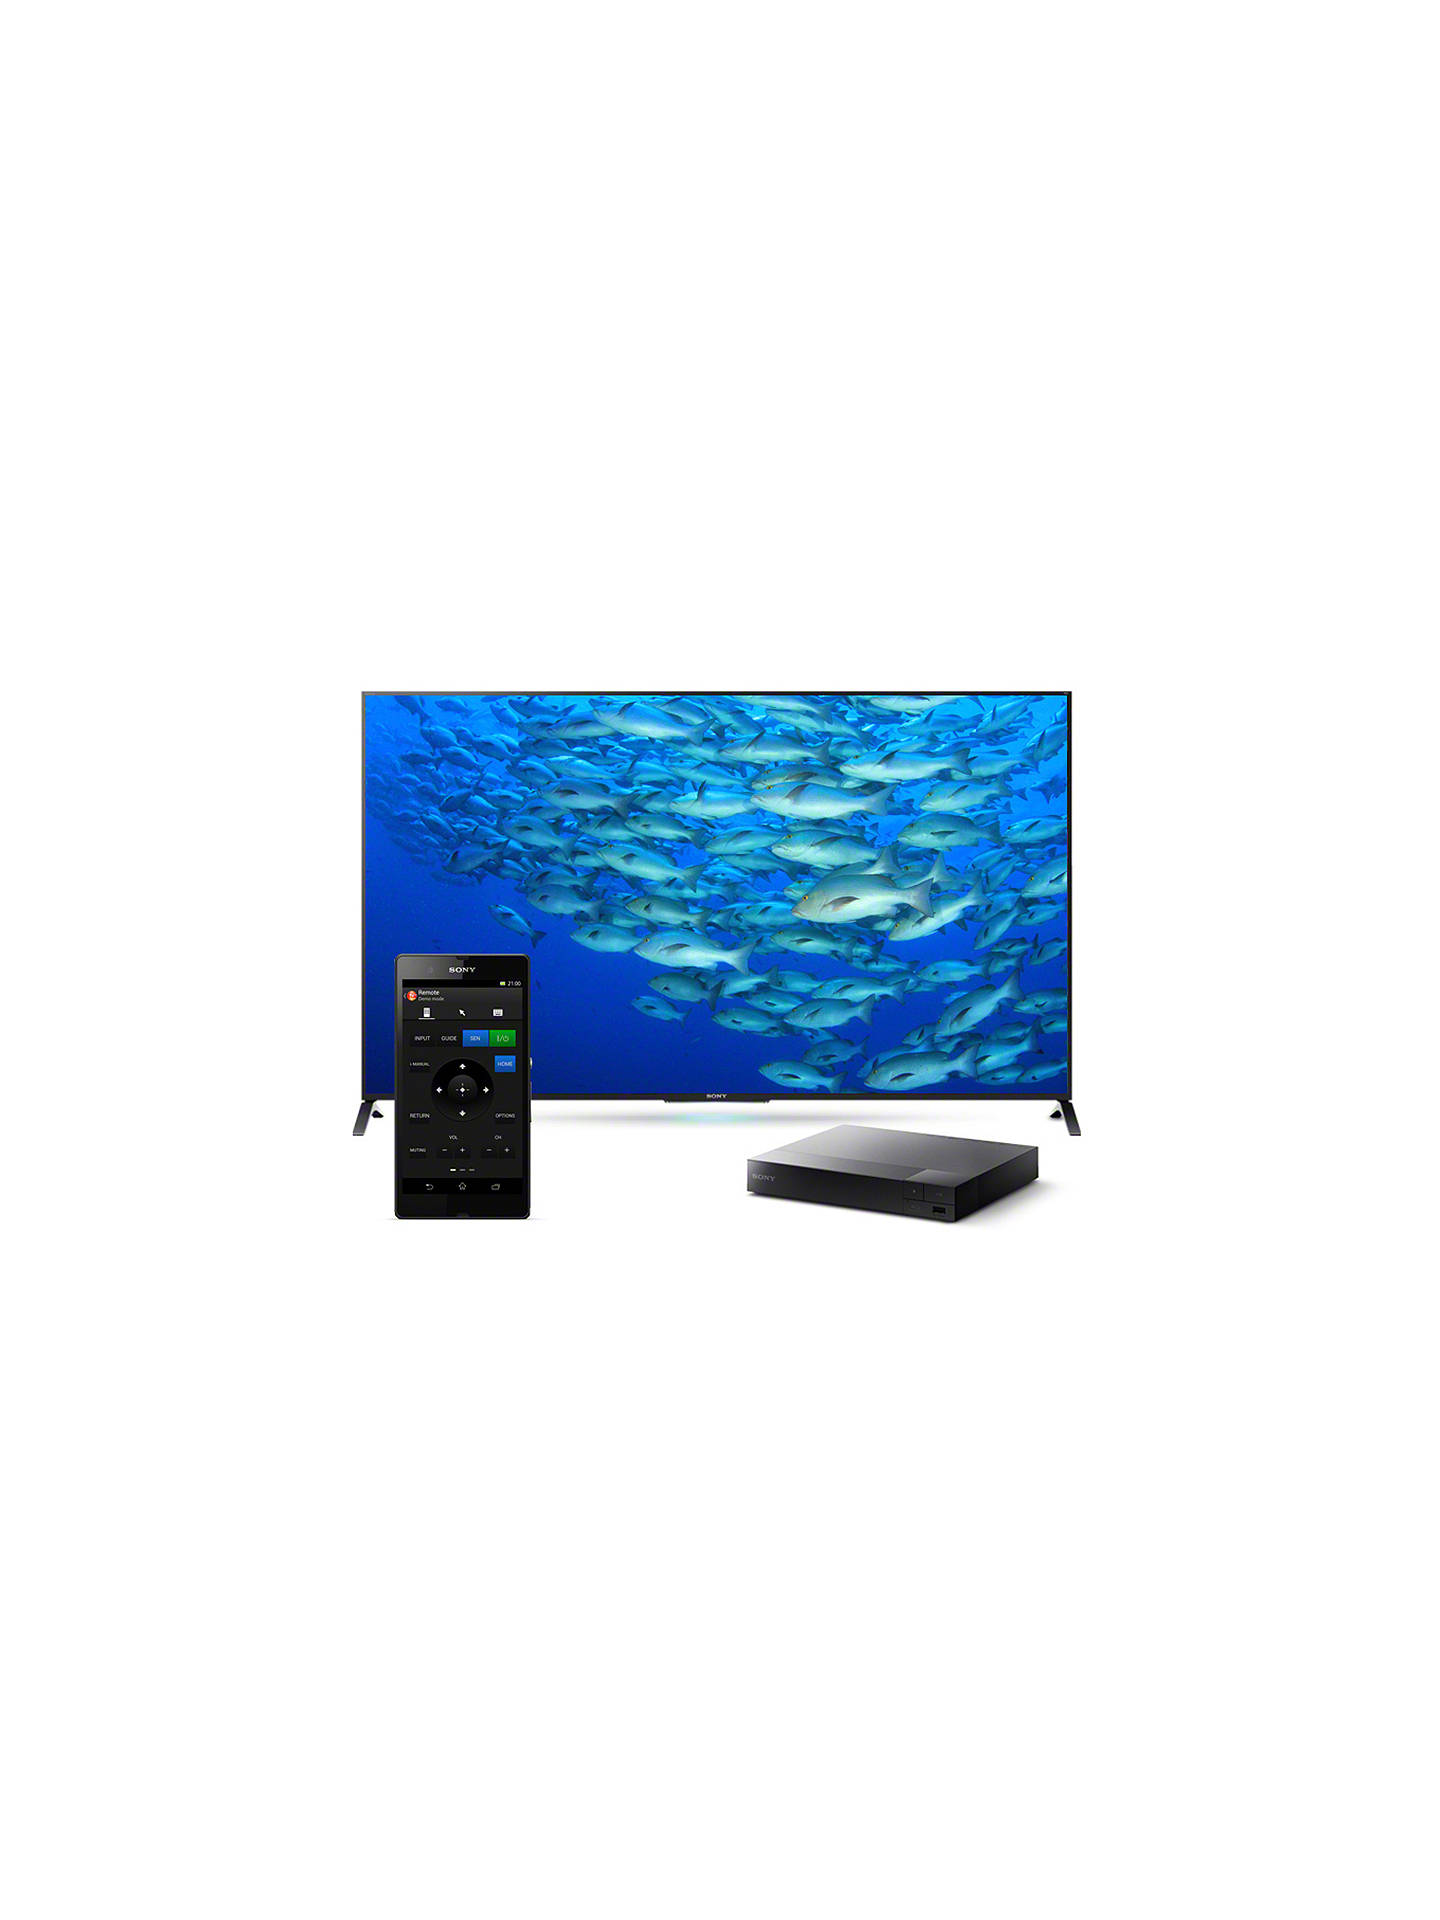 Buy Sony BDP-S3700 Smart Blu-Ray/DVD Player With Super Wi-Fi Online at johnlewis.com